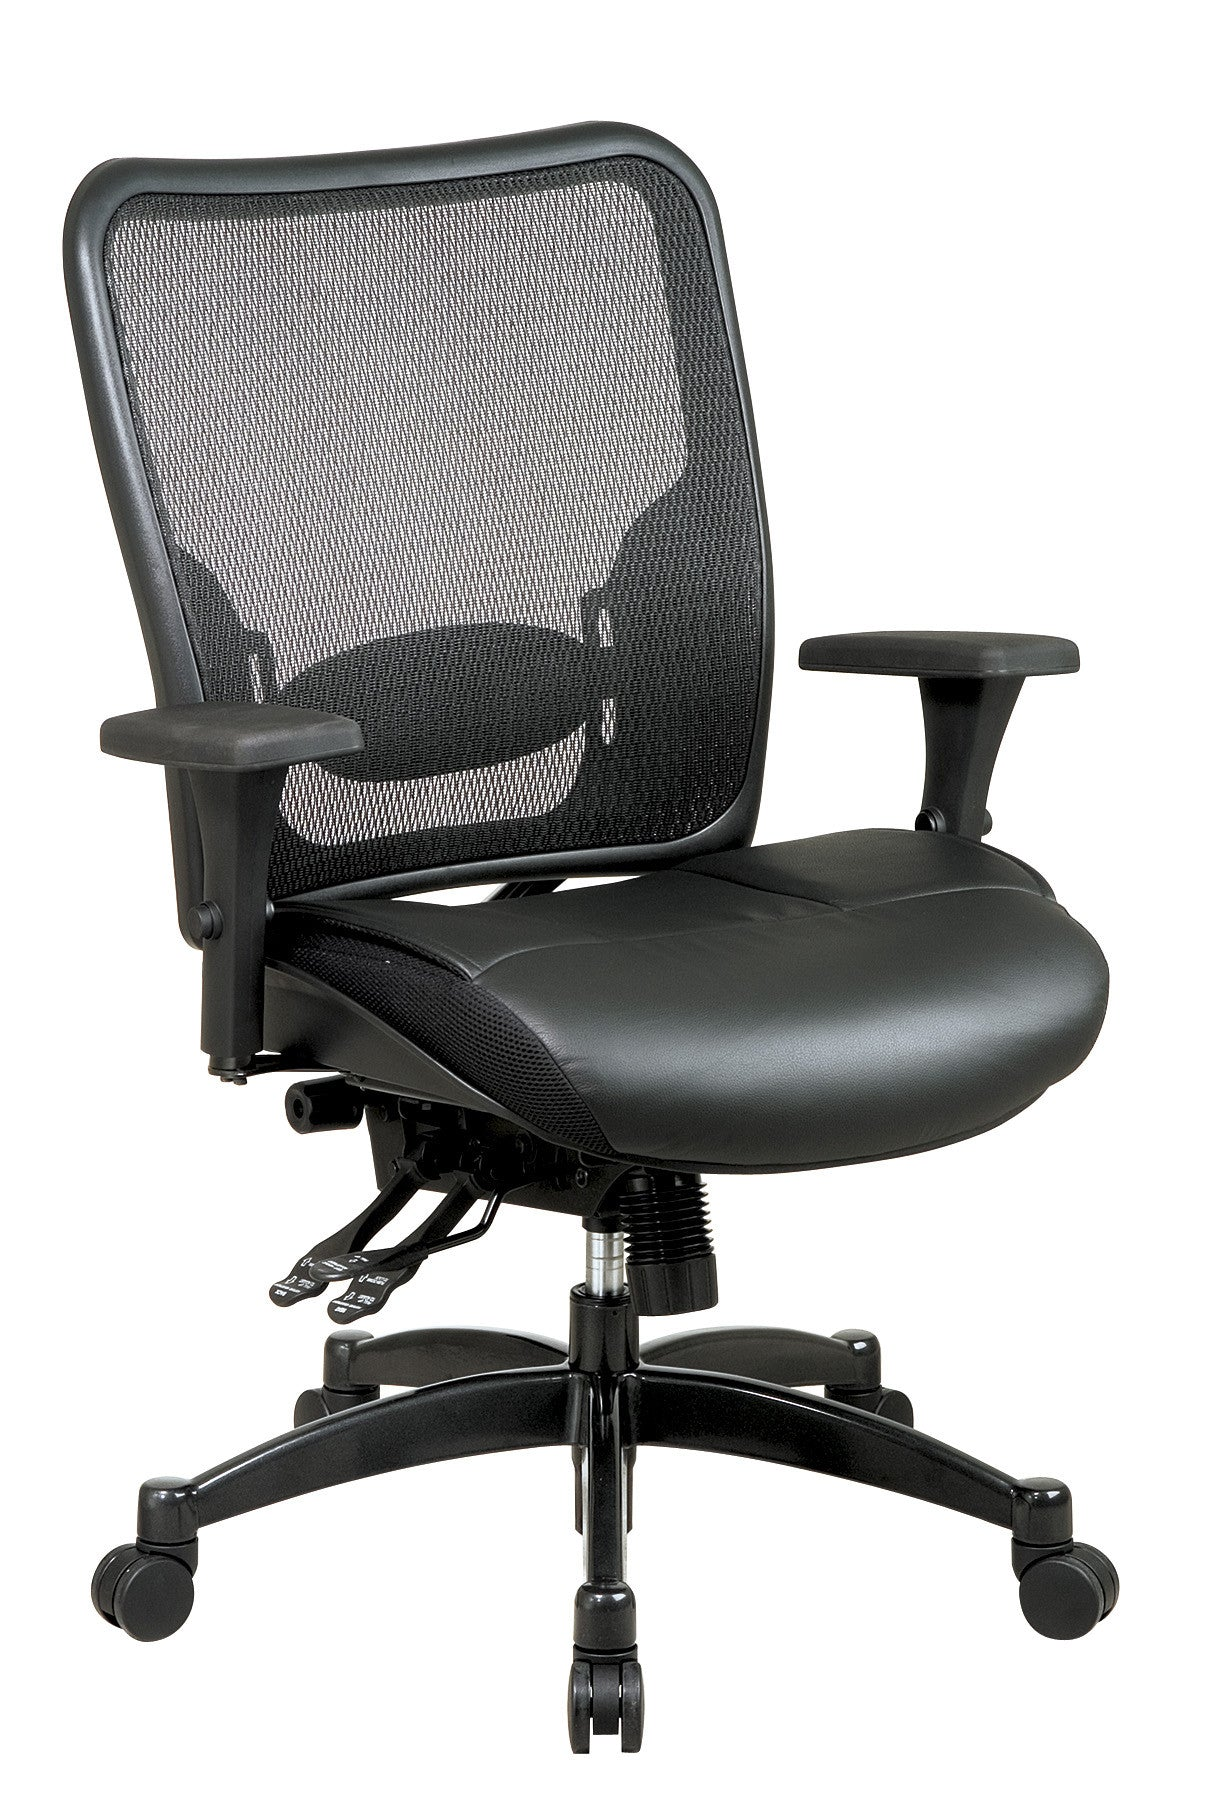 Space Seating Professional Breathable Ergonomic Chair